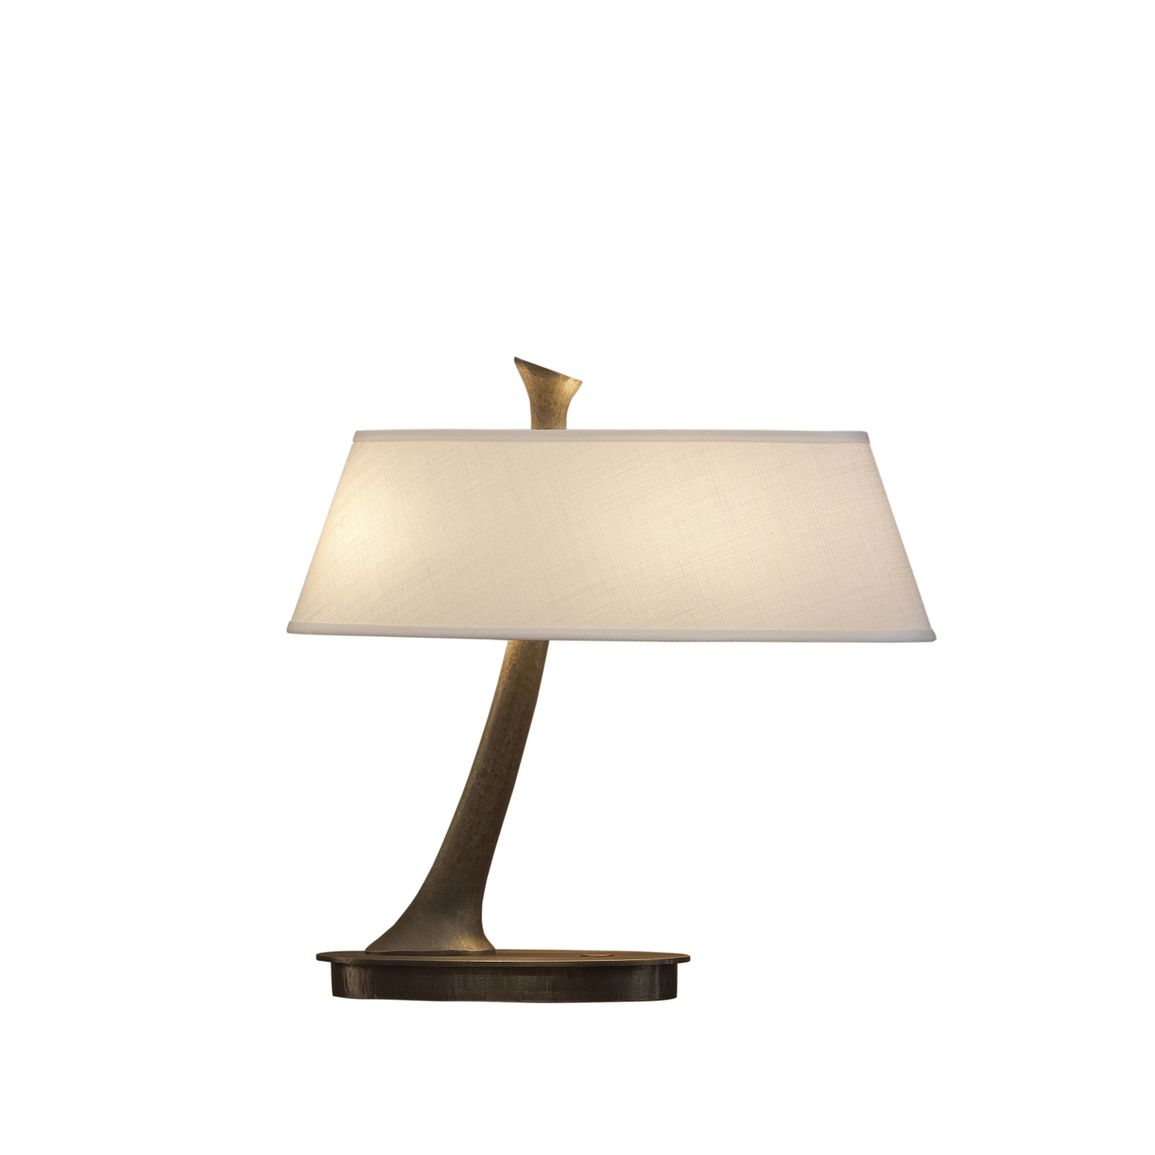 Buy Lili From Promemoria On Dering Hall Floor Lamp Table Contemporary Table Lamp